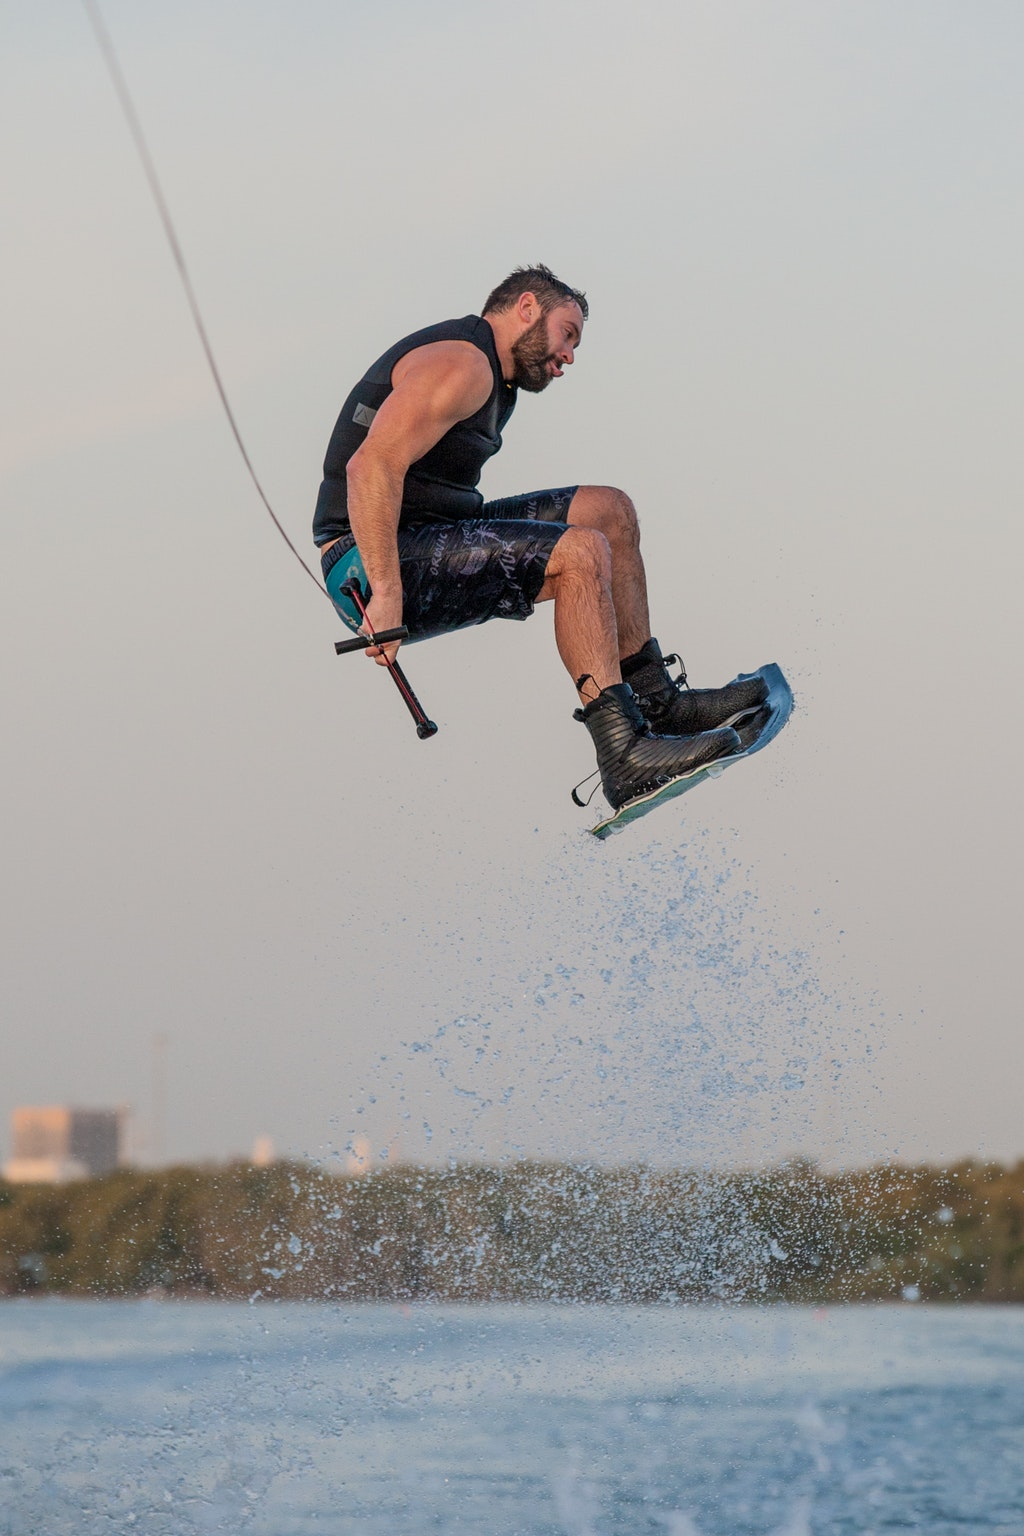 Ross Phillips, TeamGB 🇬🇧, at the 2019 Worlds in Abu Dhabi